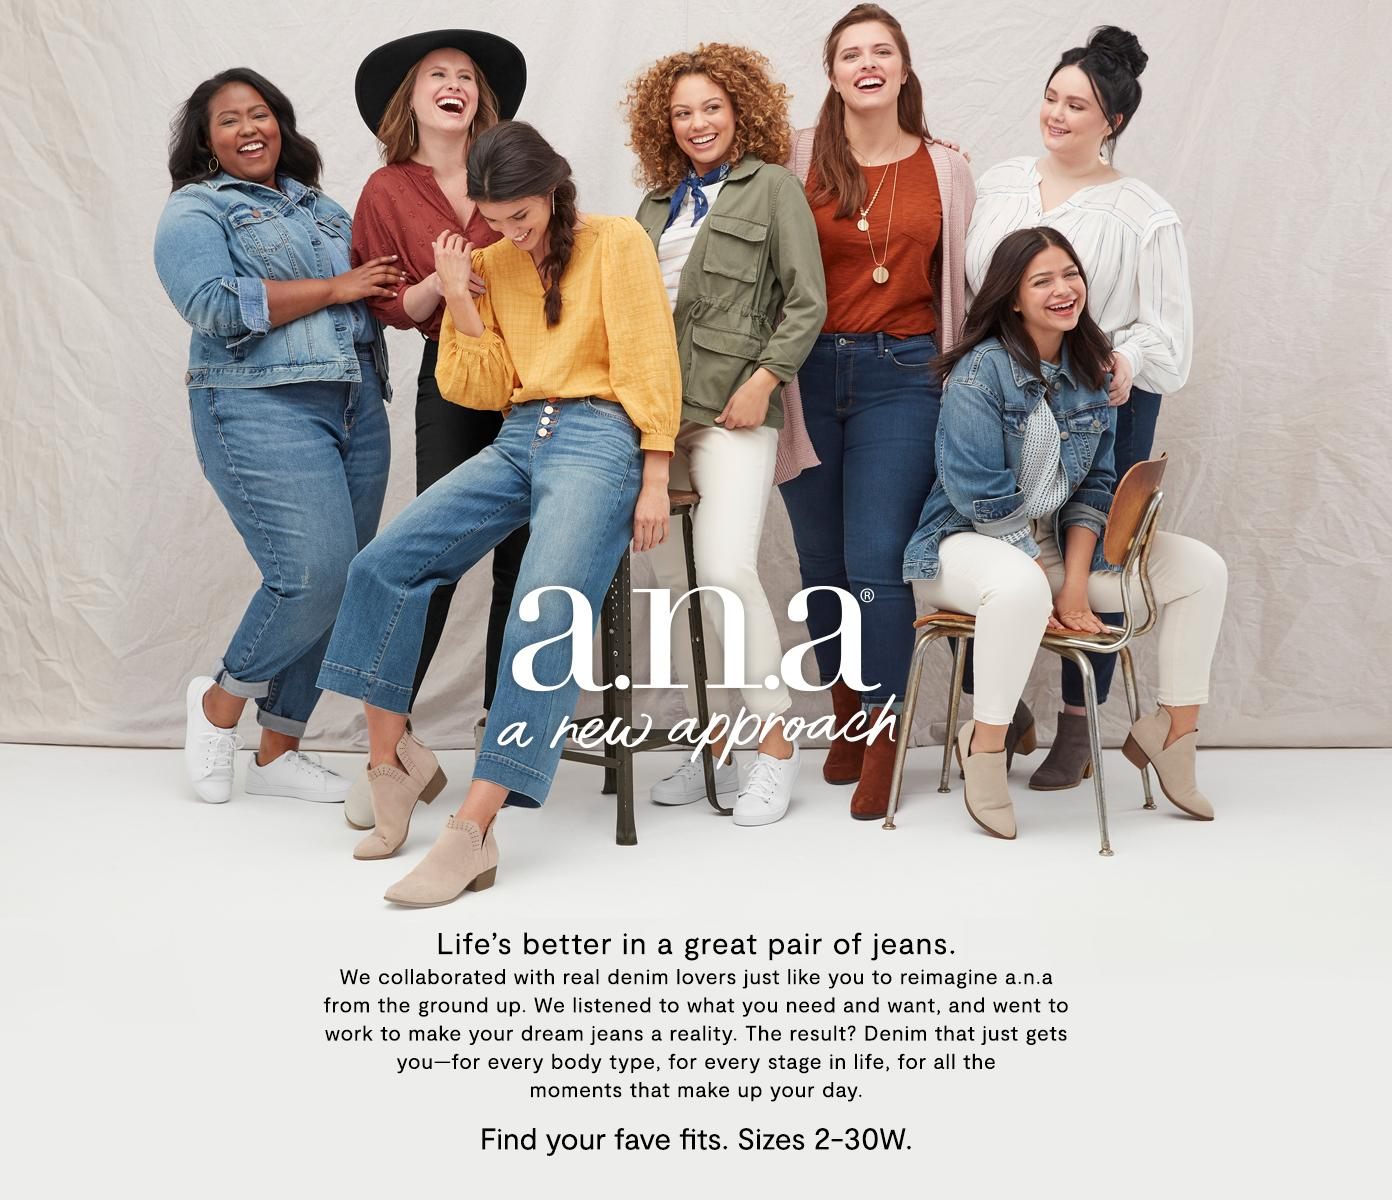 a.n.a a new approach. Life's better in a great pair of jeans. We collaborated with real denim lovers just like you to reimagine a.n.a from the ground up. We listened to what you need and want, and went to work to make your dream jeans a reality. The result? Denim that just gets you—for every body type, for every stage in life, for all the  moments that make up your day.